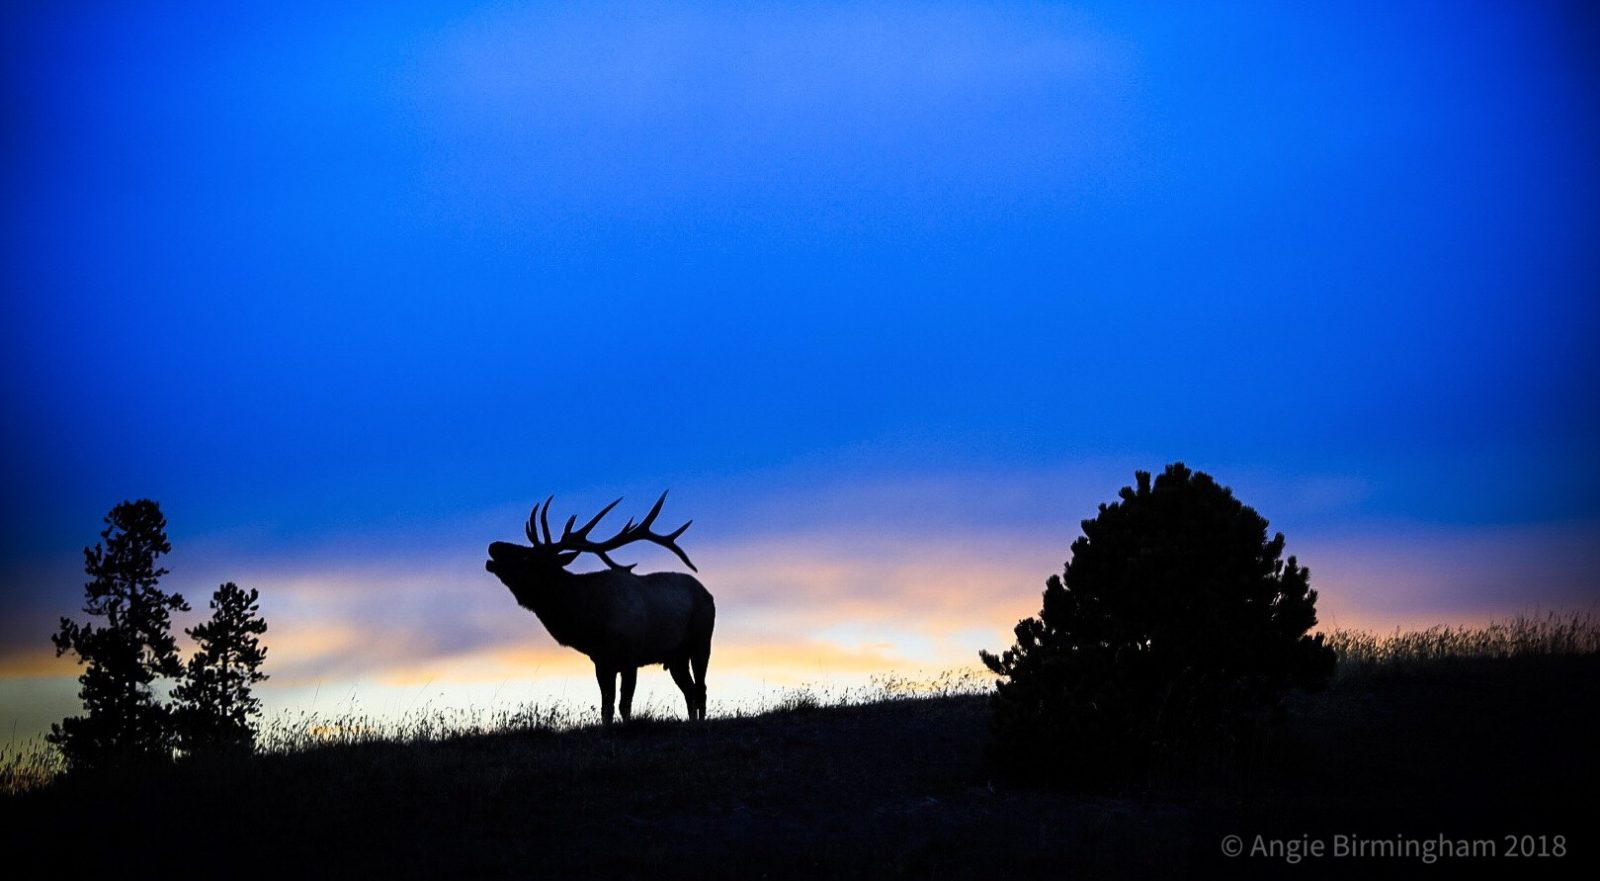 Fall sunset with a silhouette of a bugling Elk